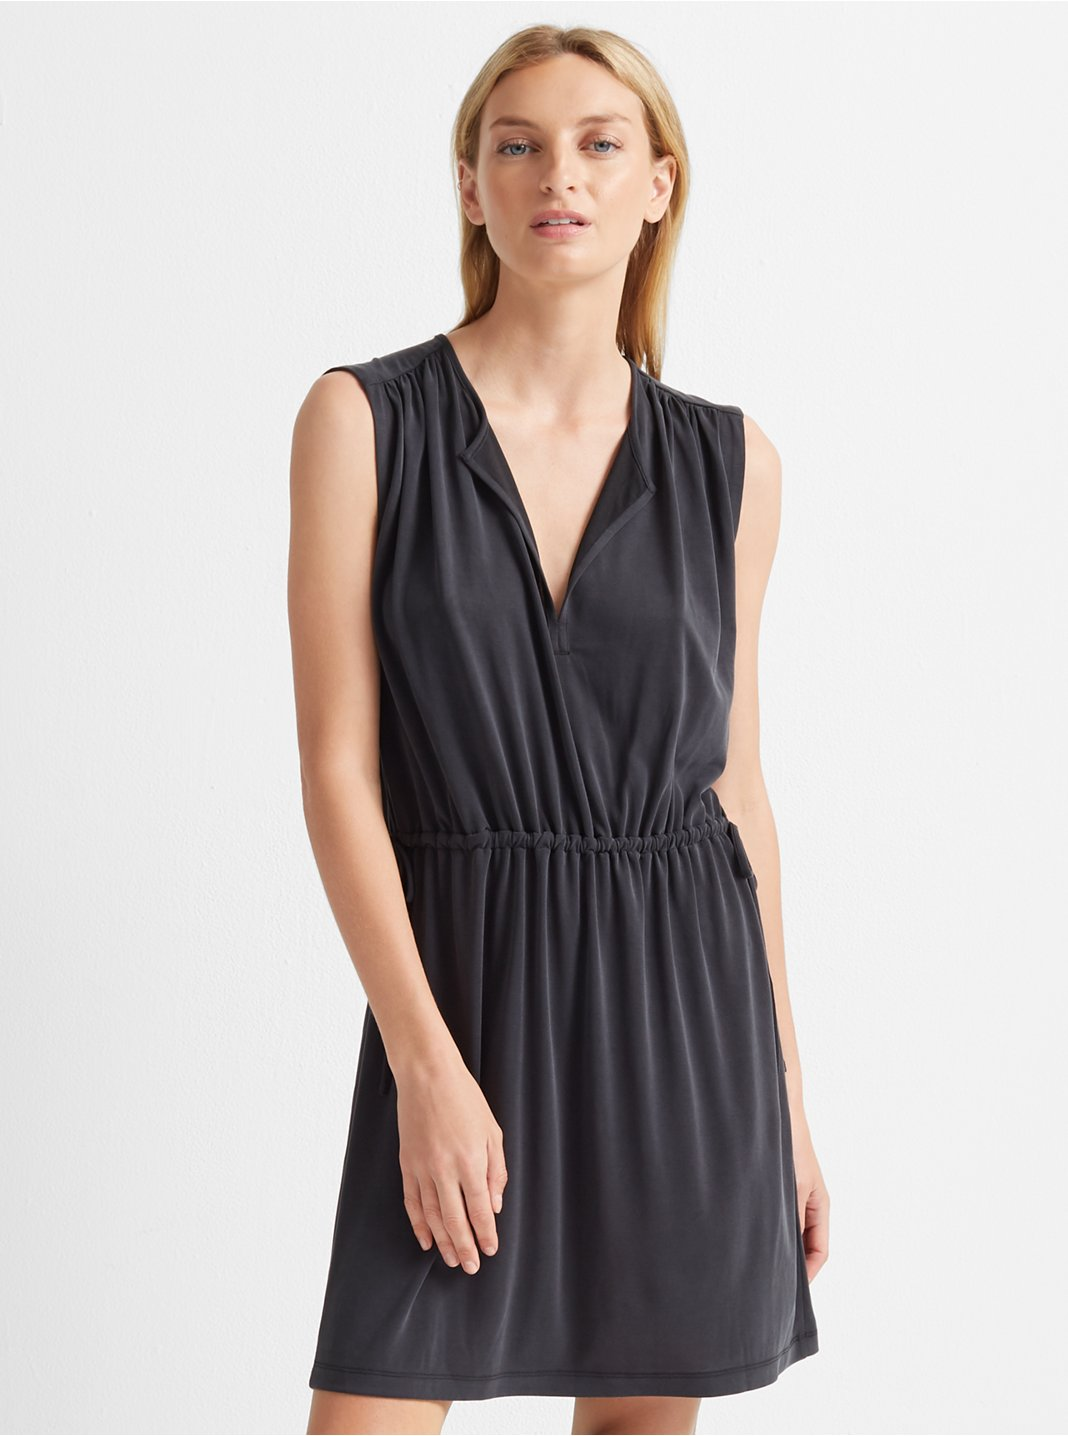 324a4b12e04d Womens Dresses | Club Monaco